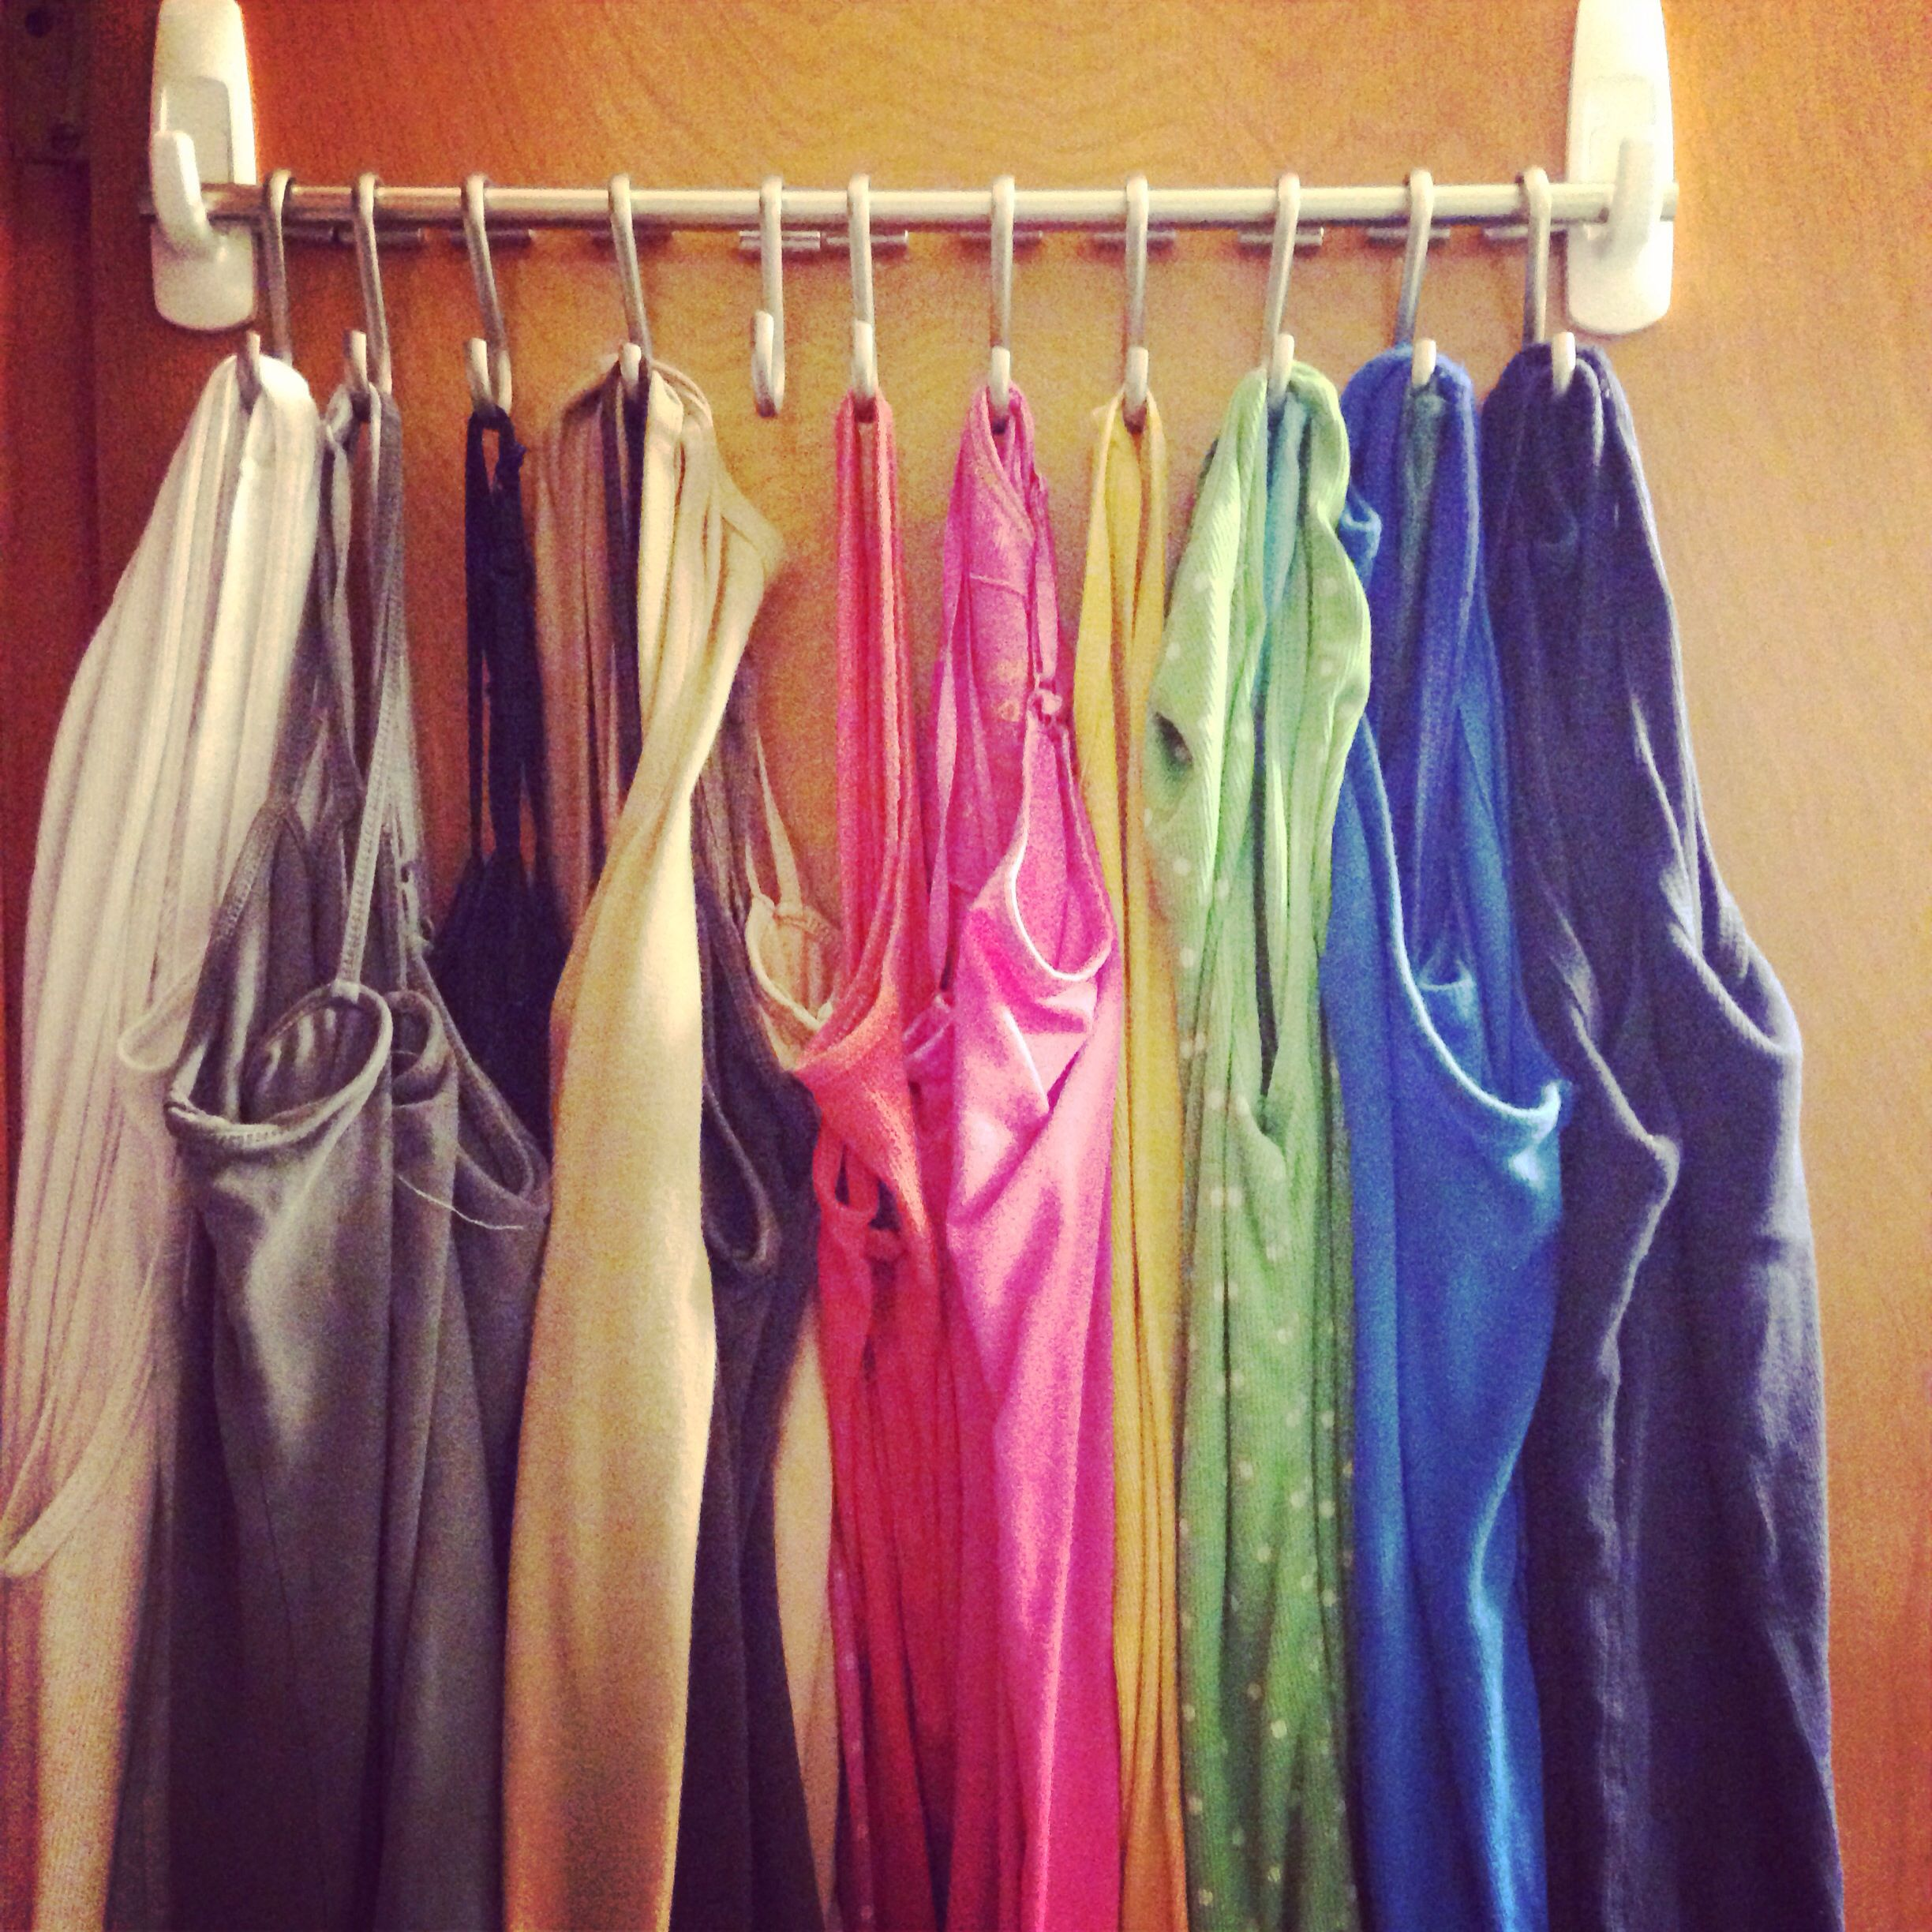 mand hooks rod and shower curtain hooks to hang tank tops